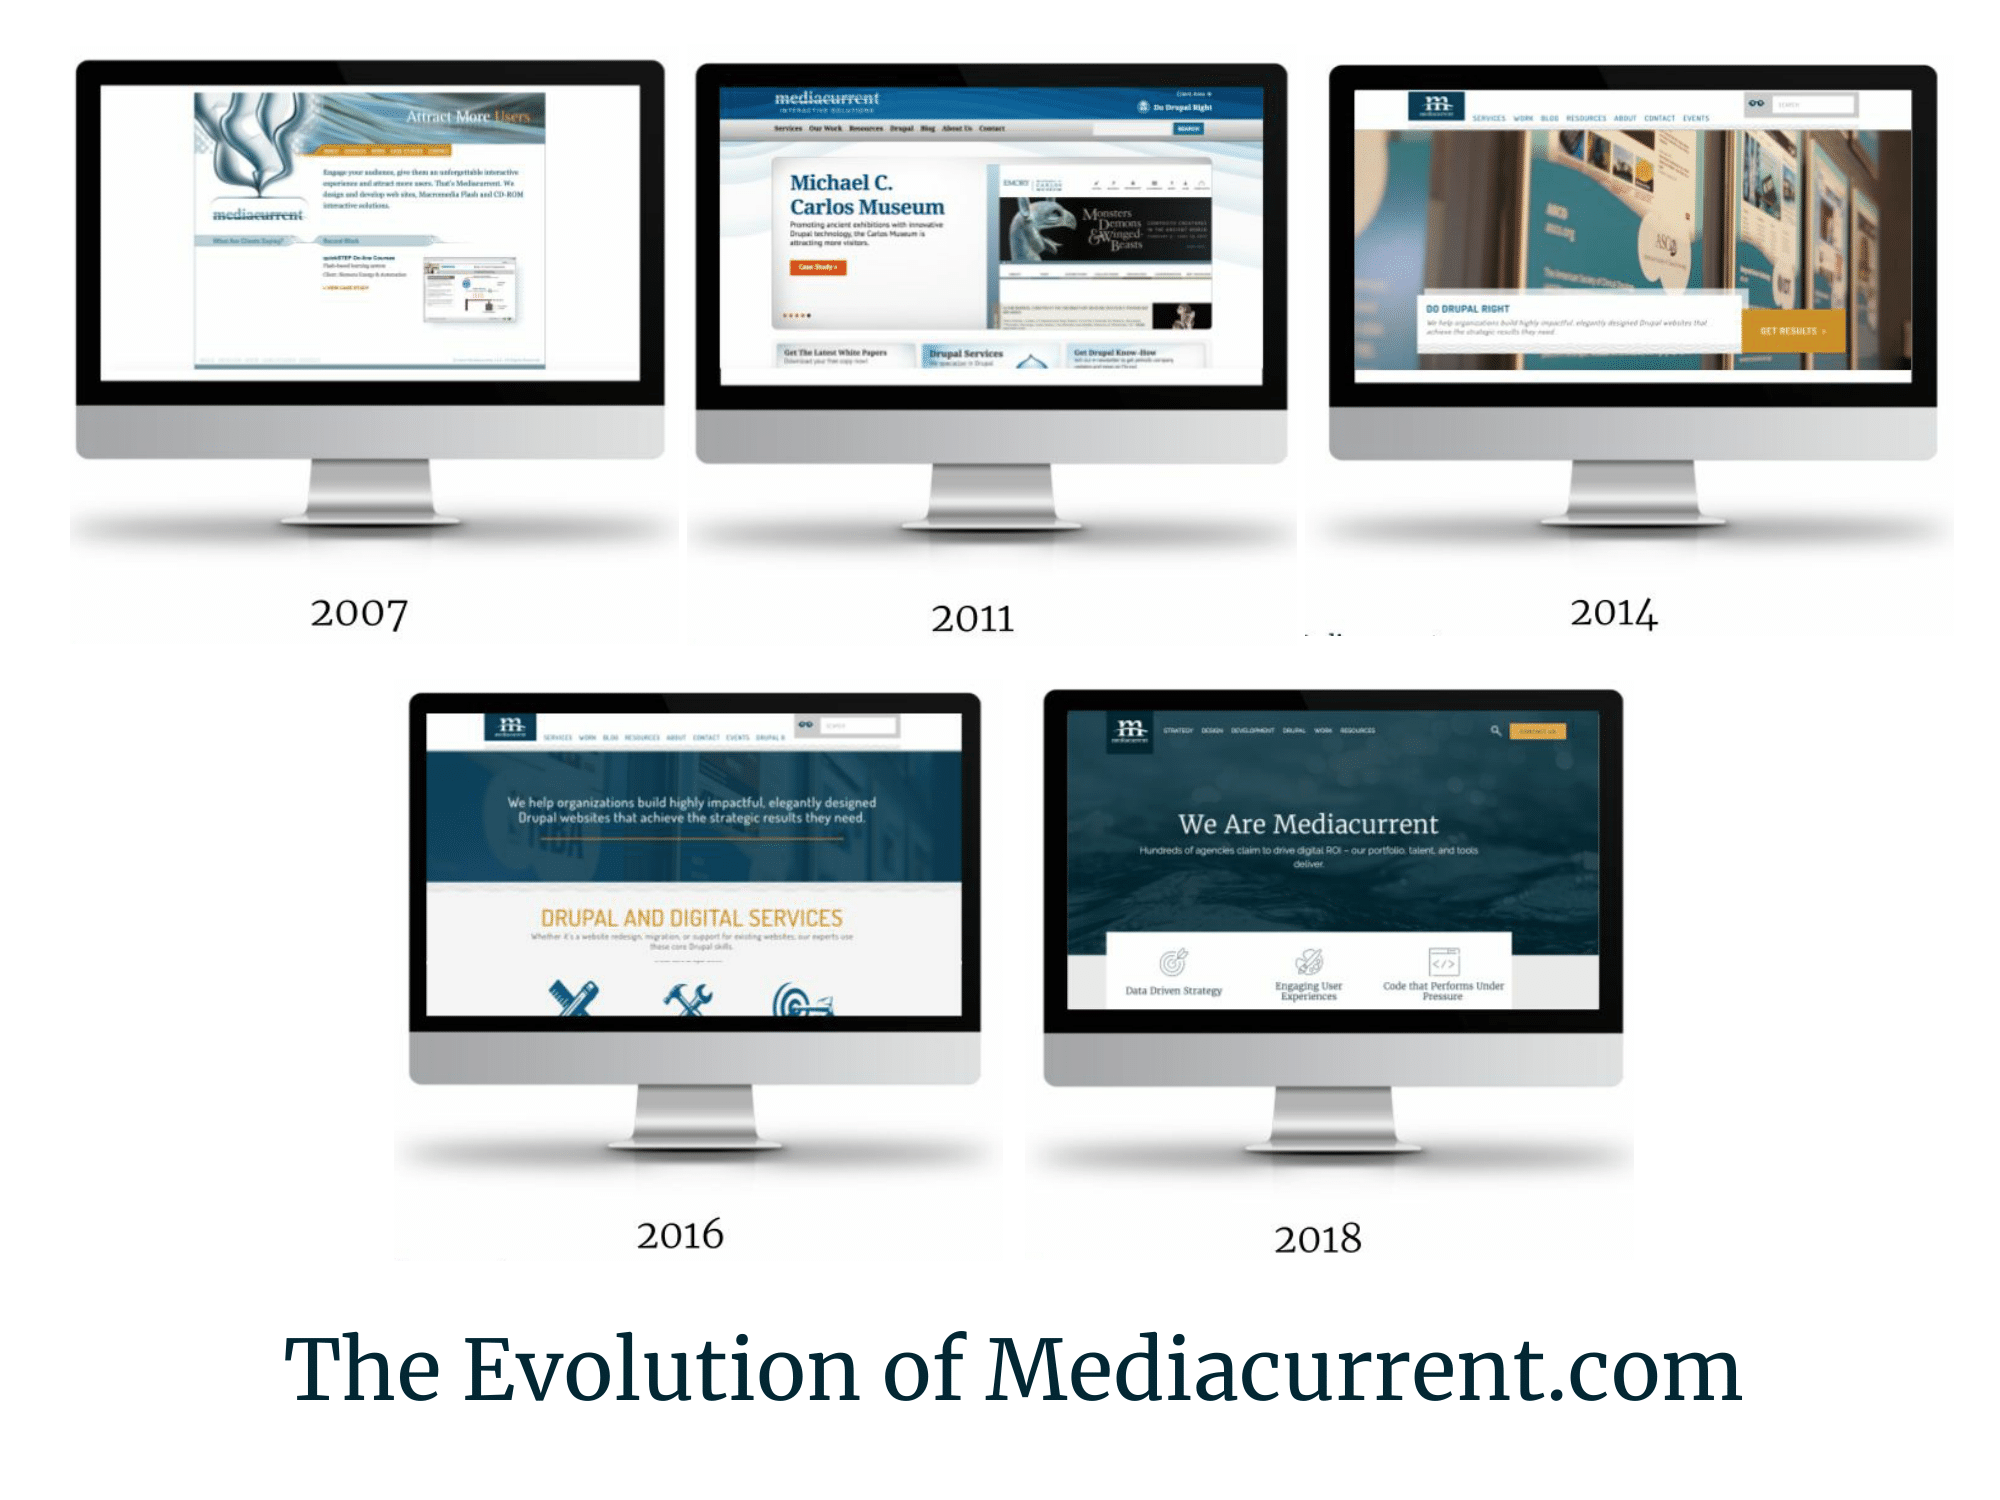 screenshots of the Mediacurrent.com homepage from 2007 to present